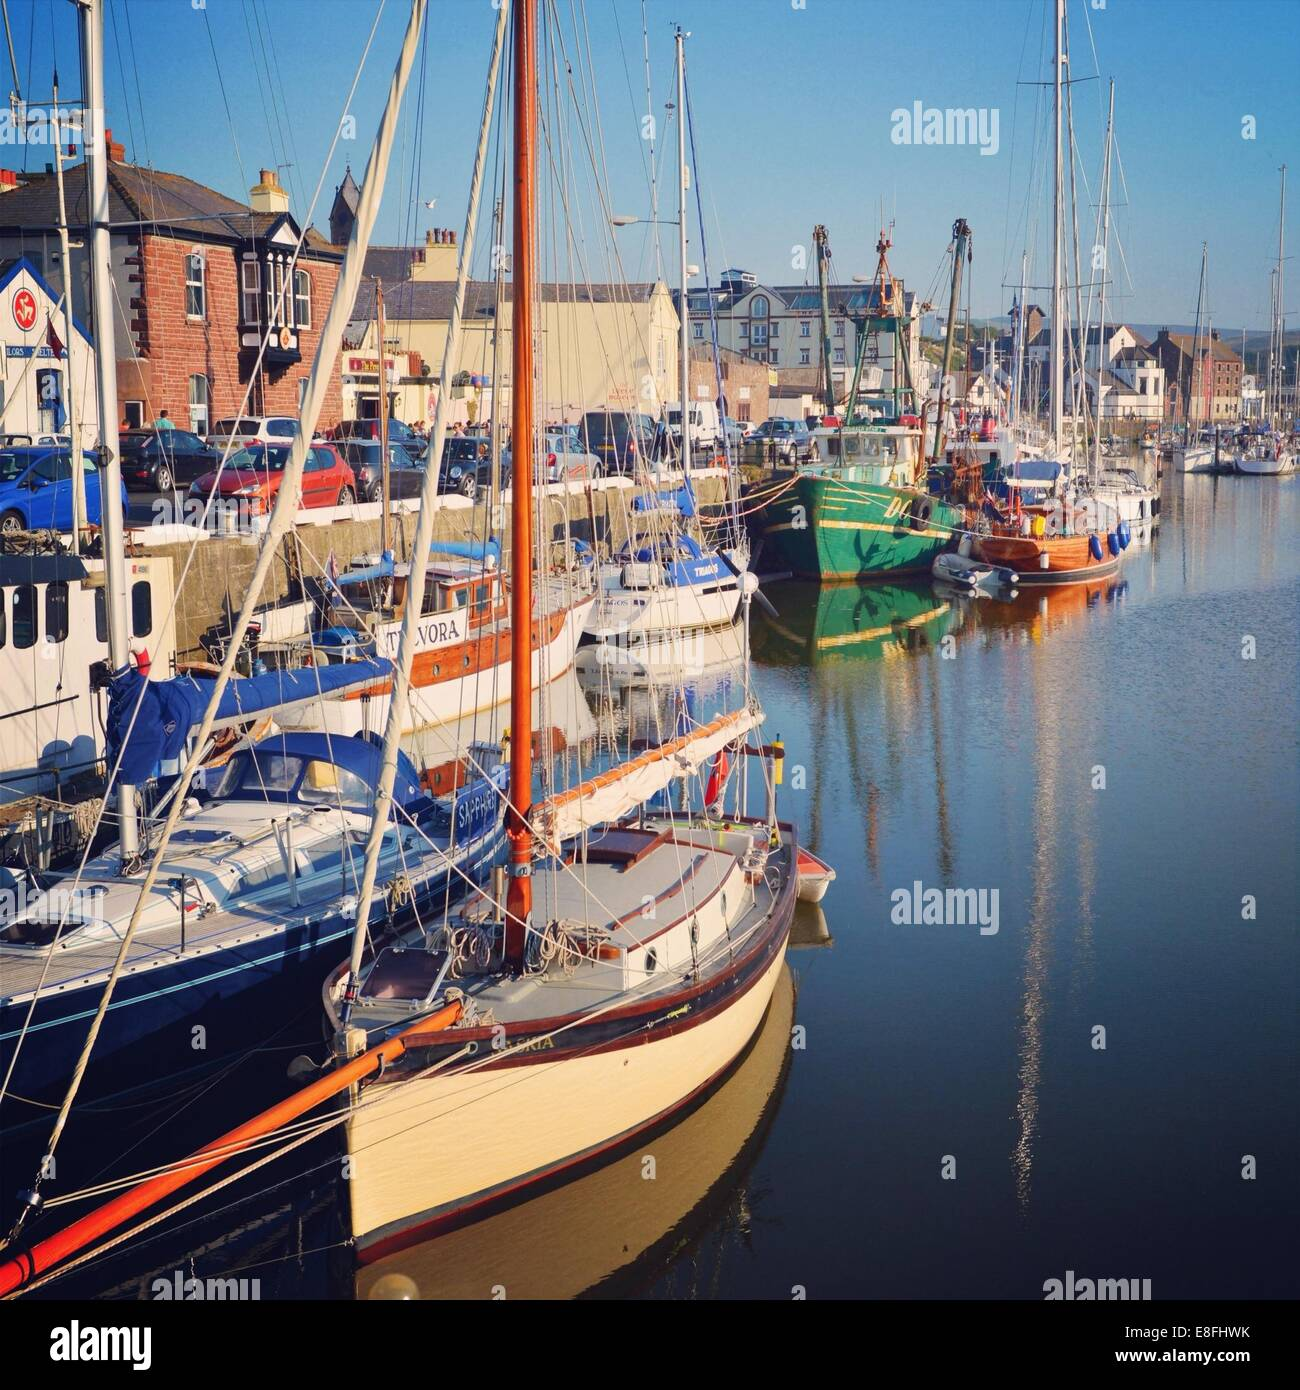 Docked boats - Stock Image